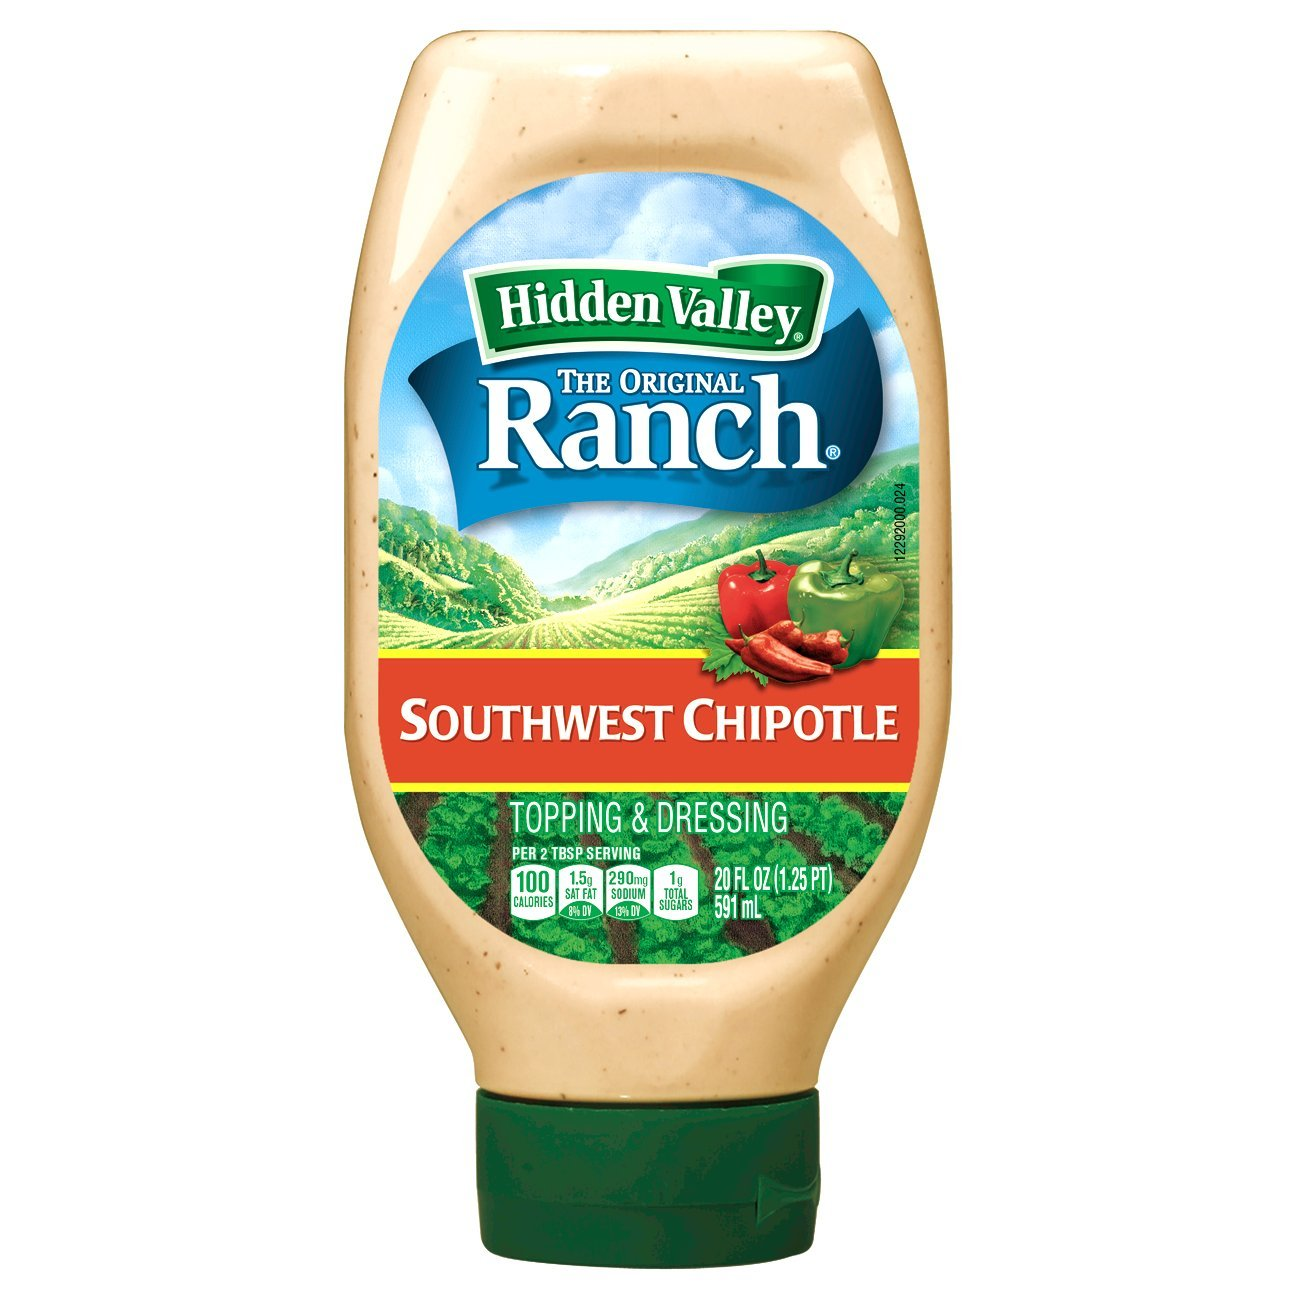 Hidden Valley Easy Squeeze Southwest Chipotle Ranch Topping & Dressing, Gluten Free - 20 Ounce Bottle (Pack of 6) by Hidden Valley